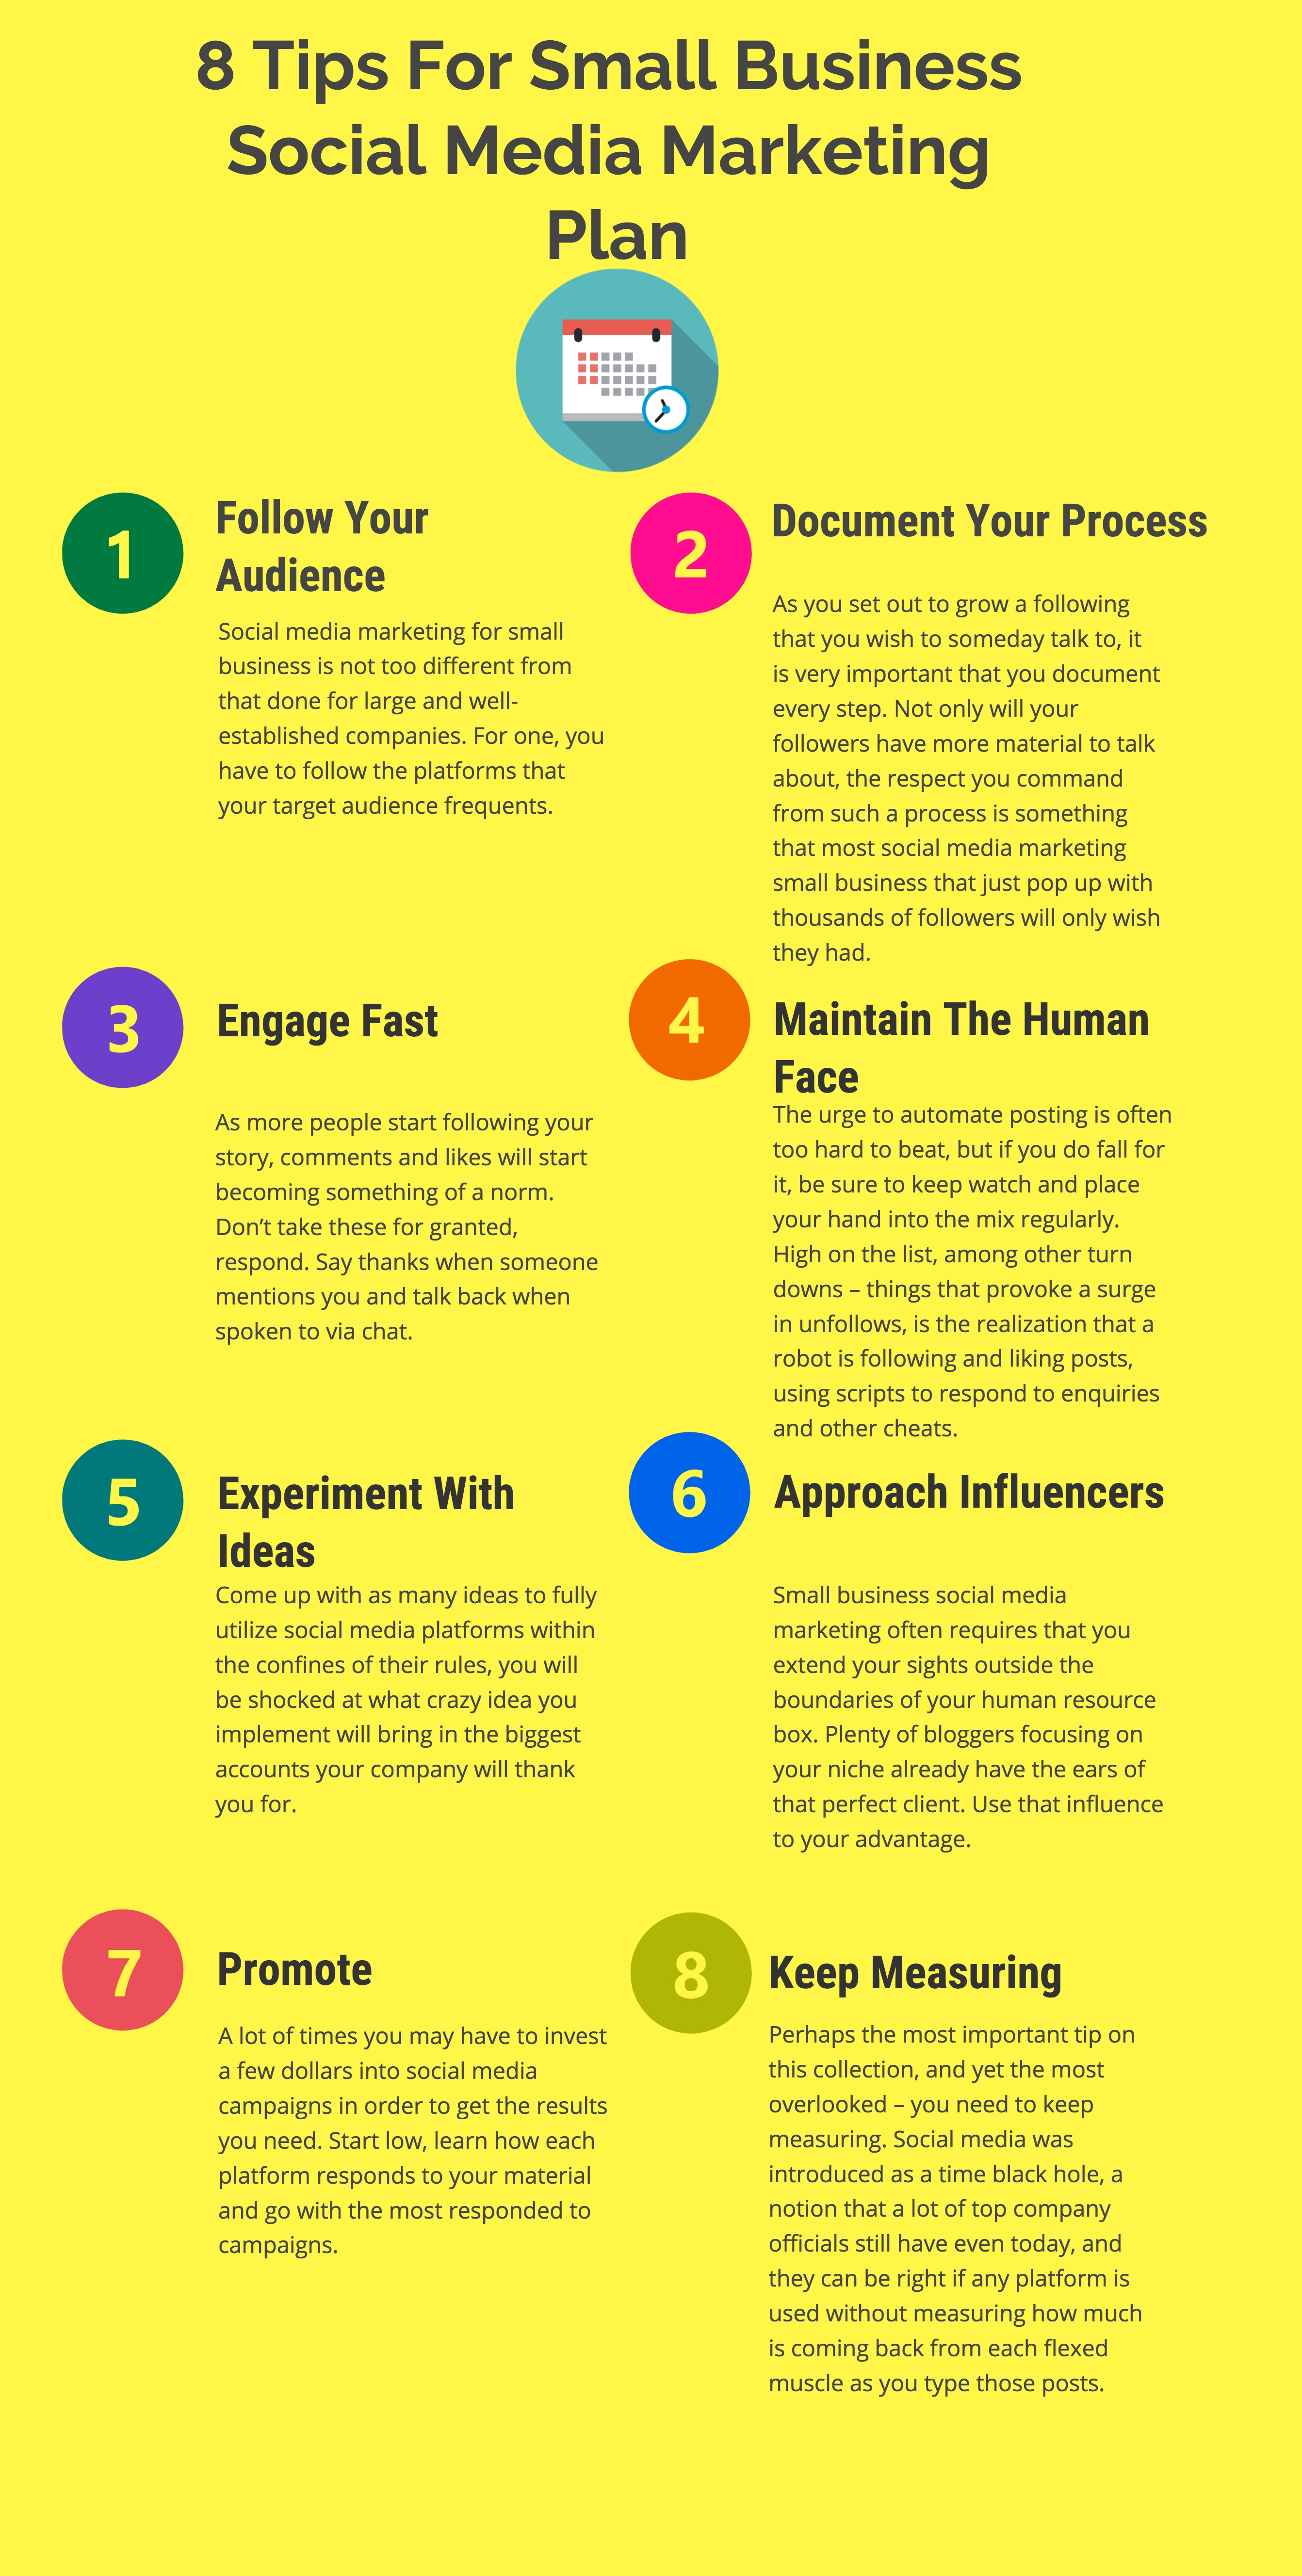 10 Gorgeous Marketing Ideas For Small Business affordable social media 99 social low cost social media 1 2021